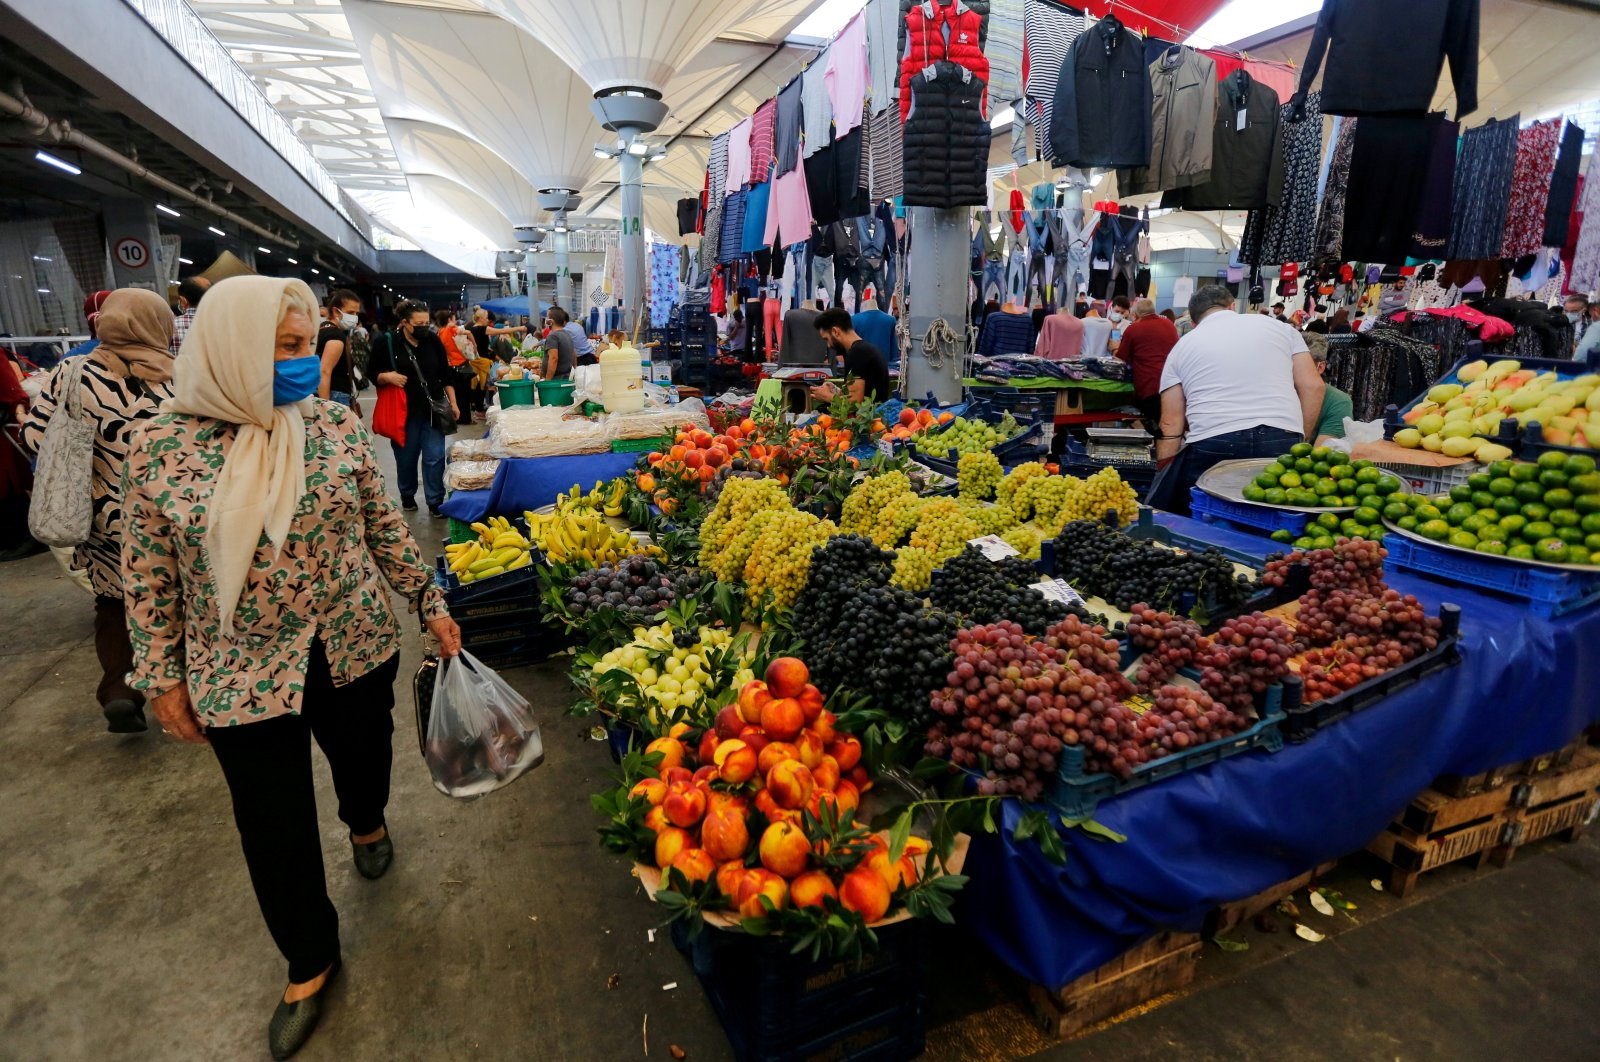 People shop at a local market, amid the coronavirus disease (COVID-19) outbreak, in Istanbul, Turkey, Sept. 14, 2021. (Reuters Photo)